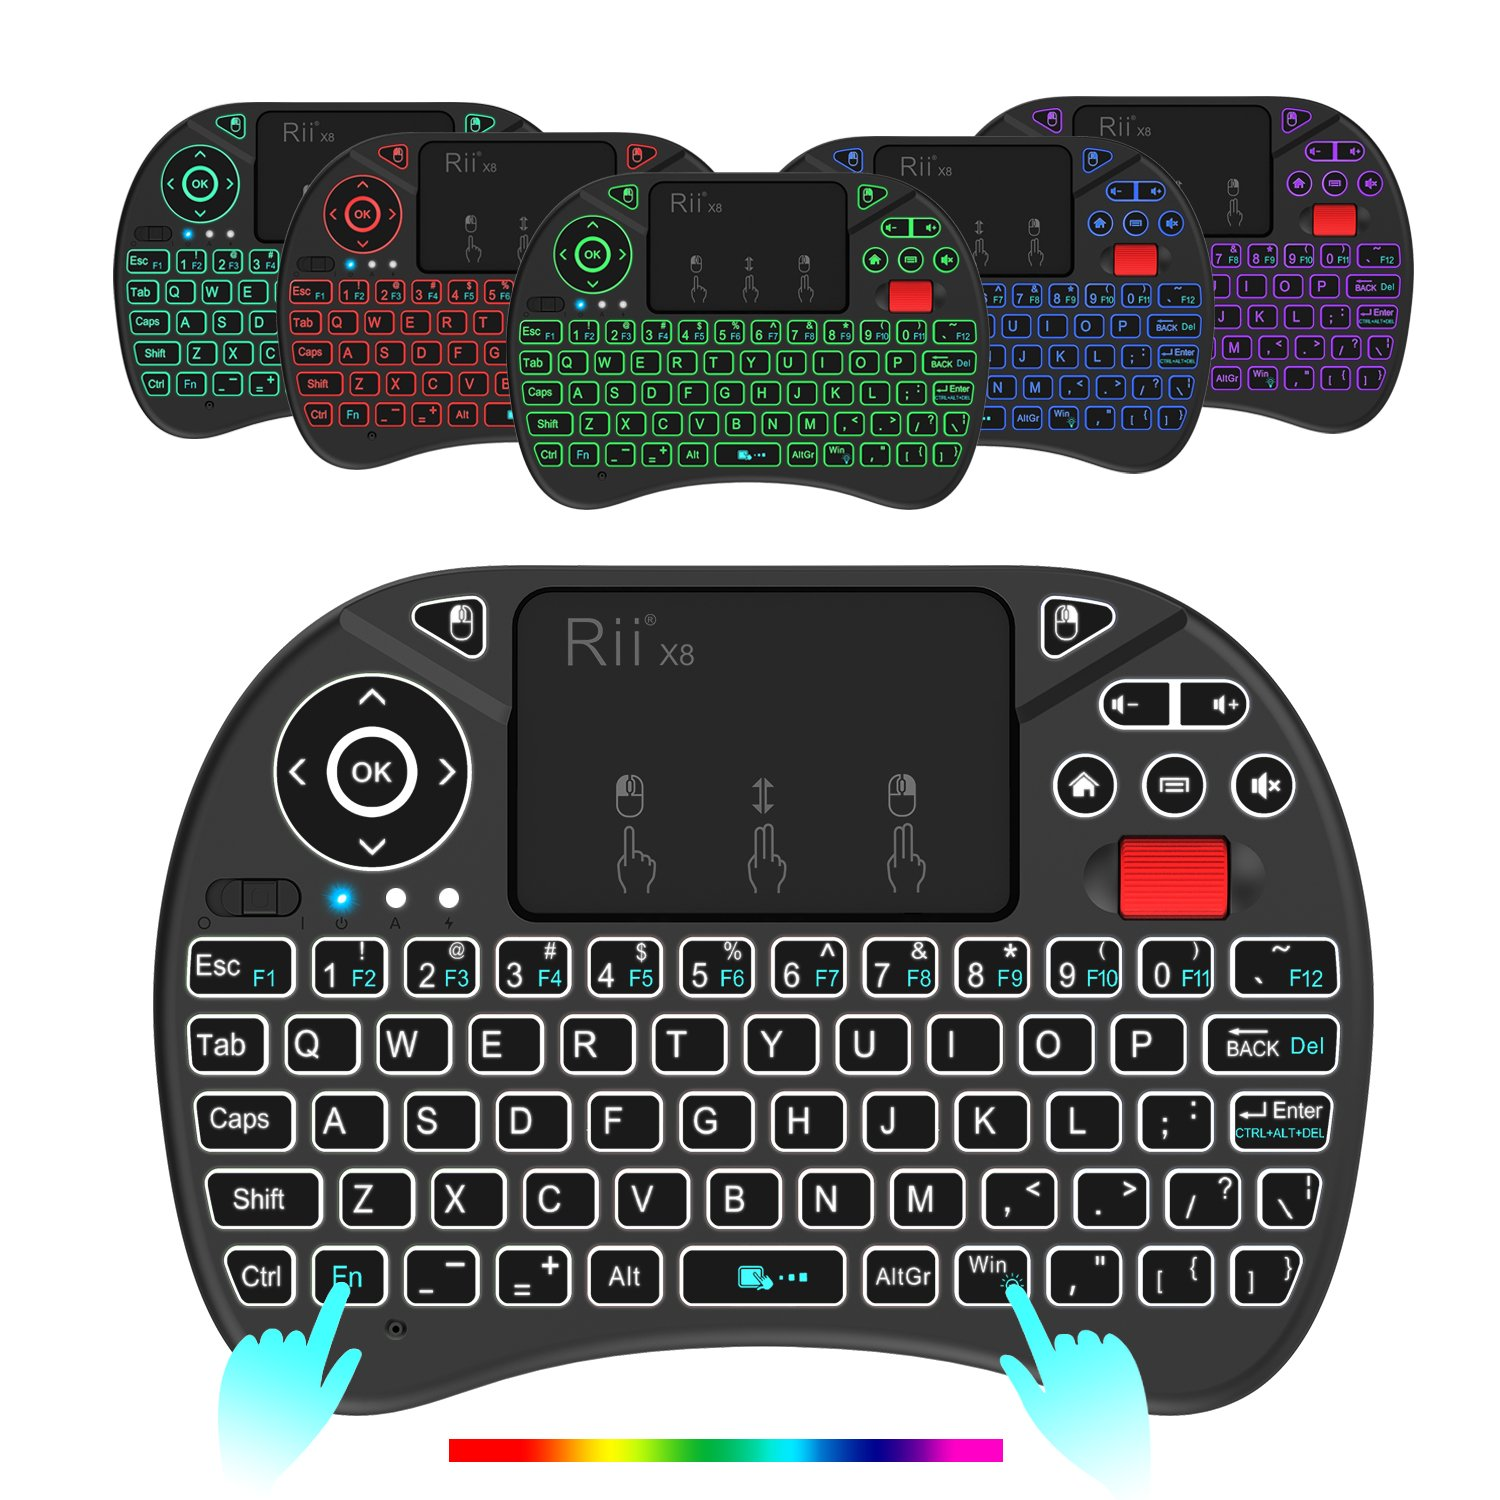 (Updated 2018,8-Color RGB Backlit) Rii X8 2.4GHz Mini Wireless Keyboard with Touchpad Mouse Combo, RGB Backlit, Rechargeable Li-ion Battery-Black by Rii (Image #2)